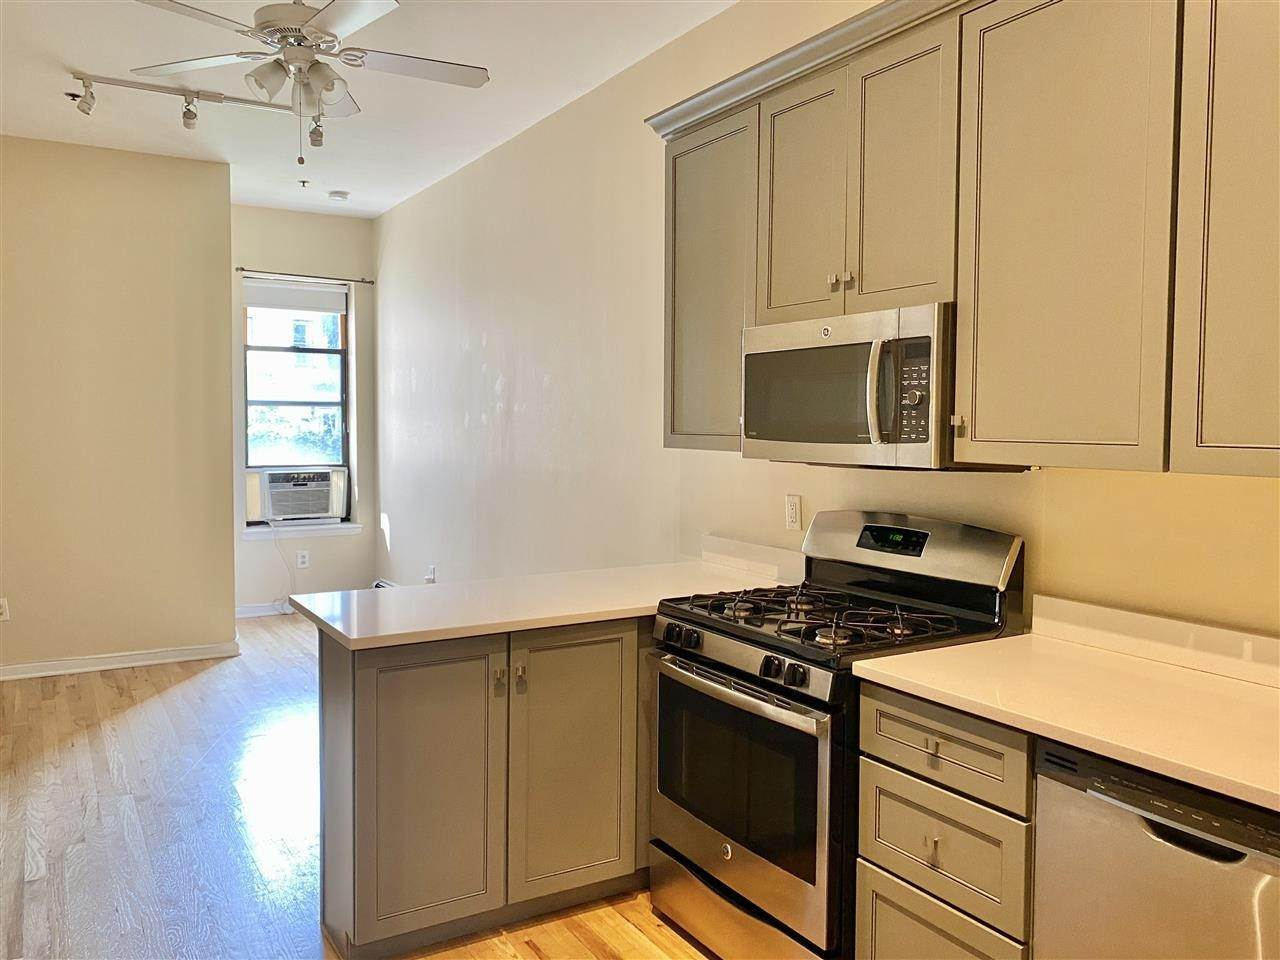 3. Residential for Rent at 813 Park Avenue #2 Hoboken, New Jersey 07030 United States